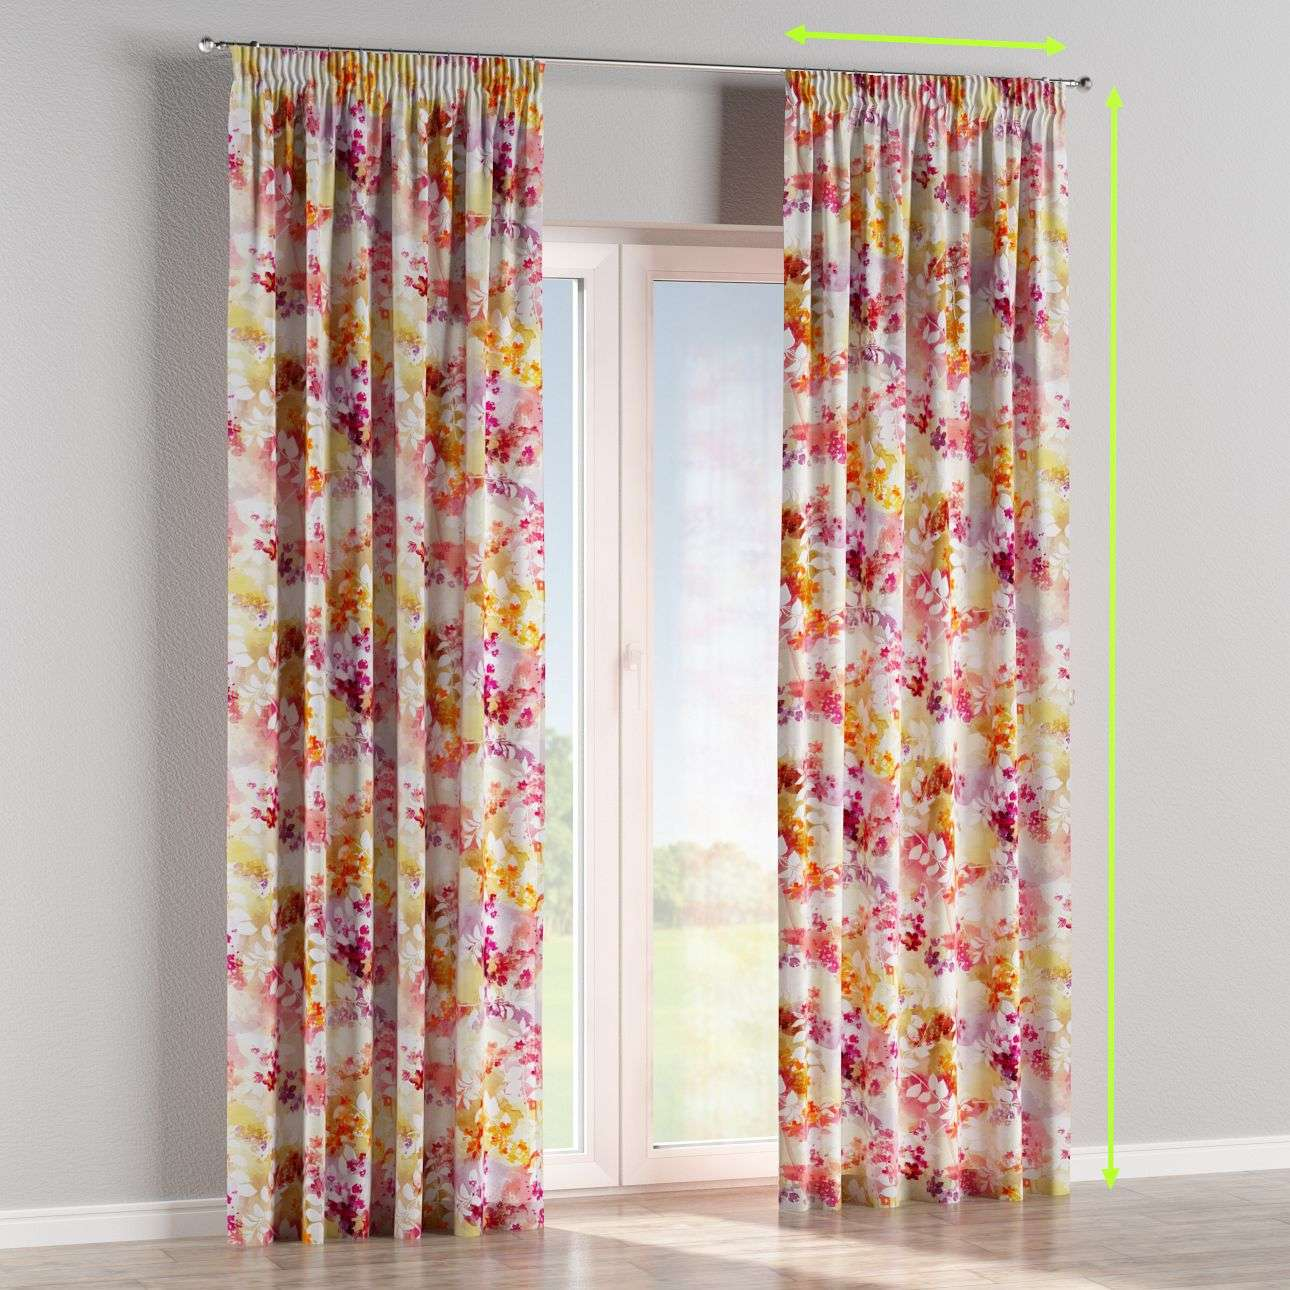 Pencil pleat curtains in collection Monet, fabric: 140-05